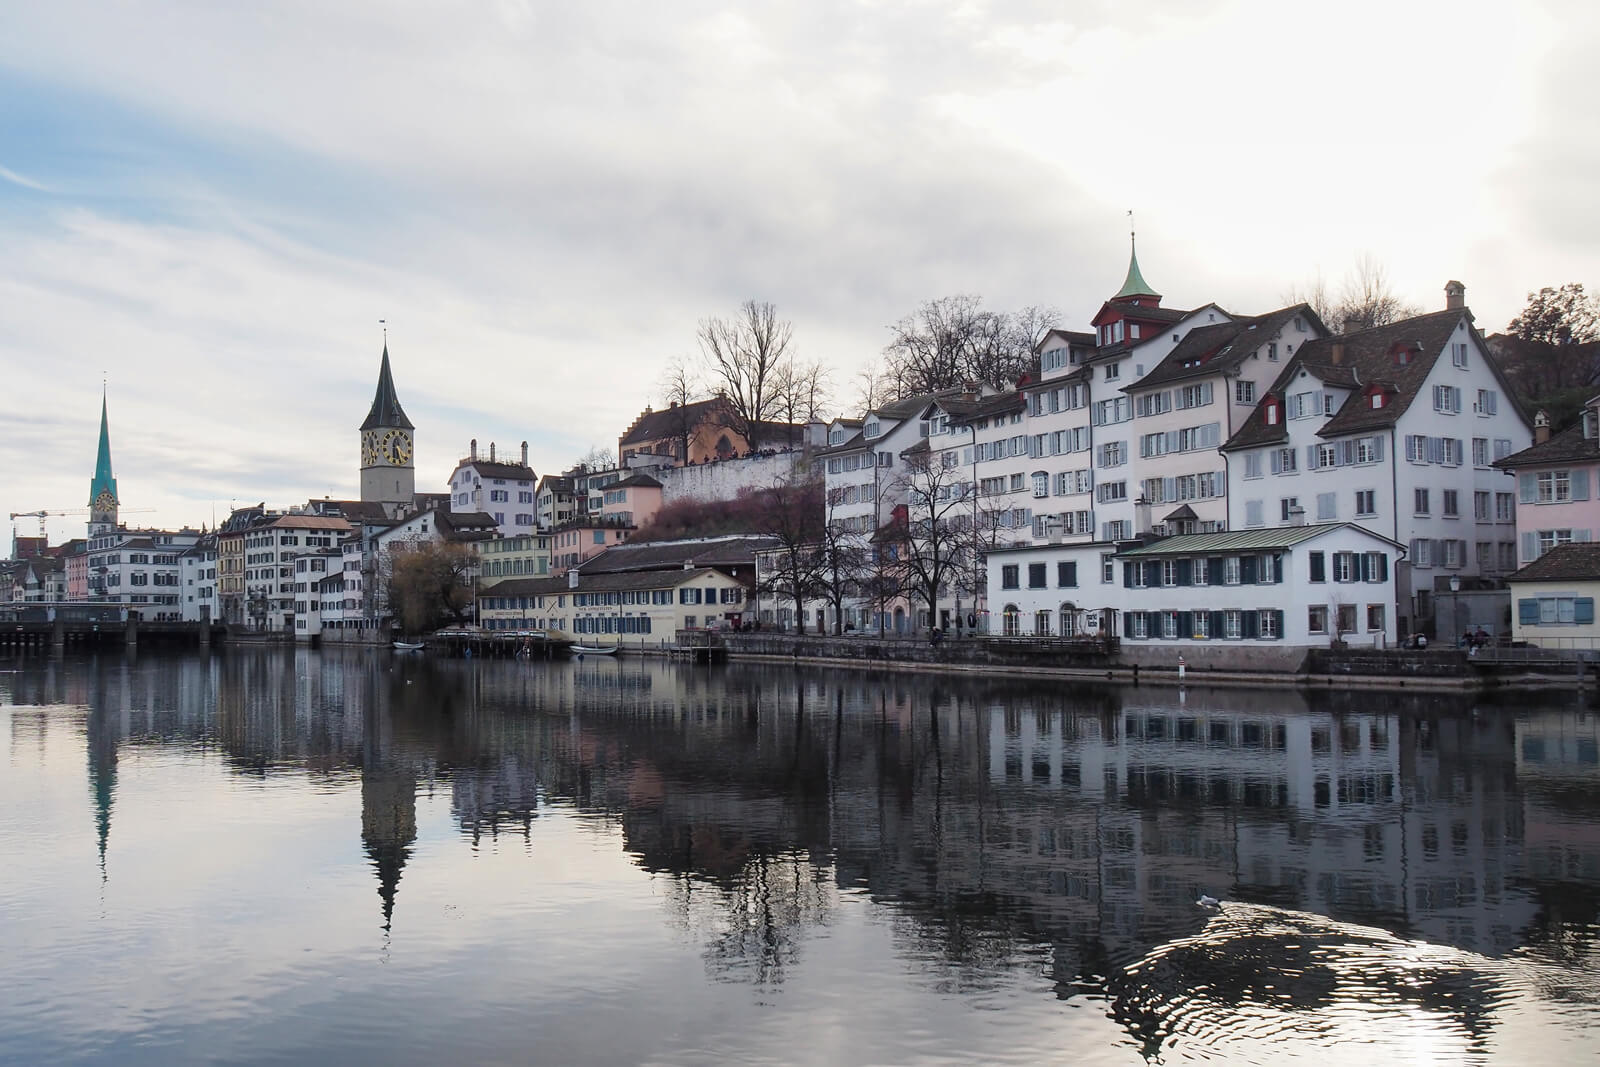 Zürich Limmat River in February